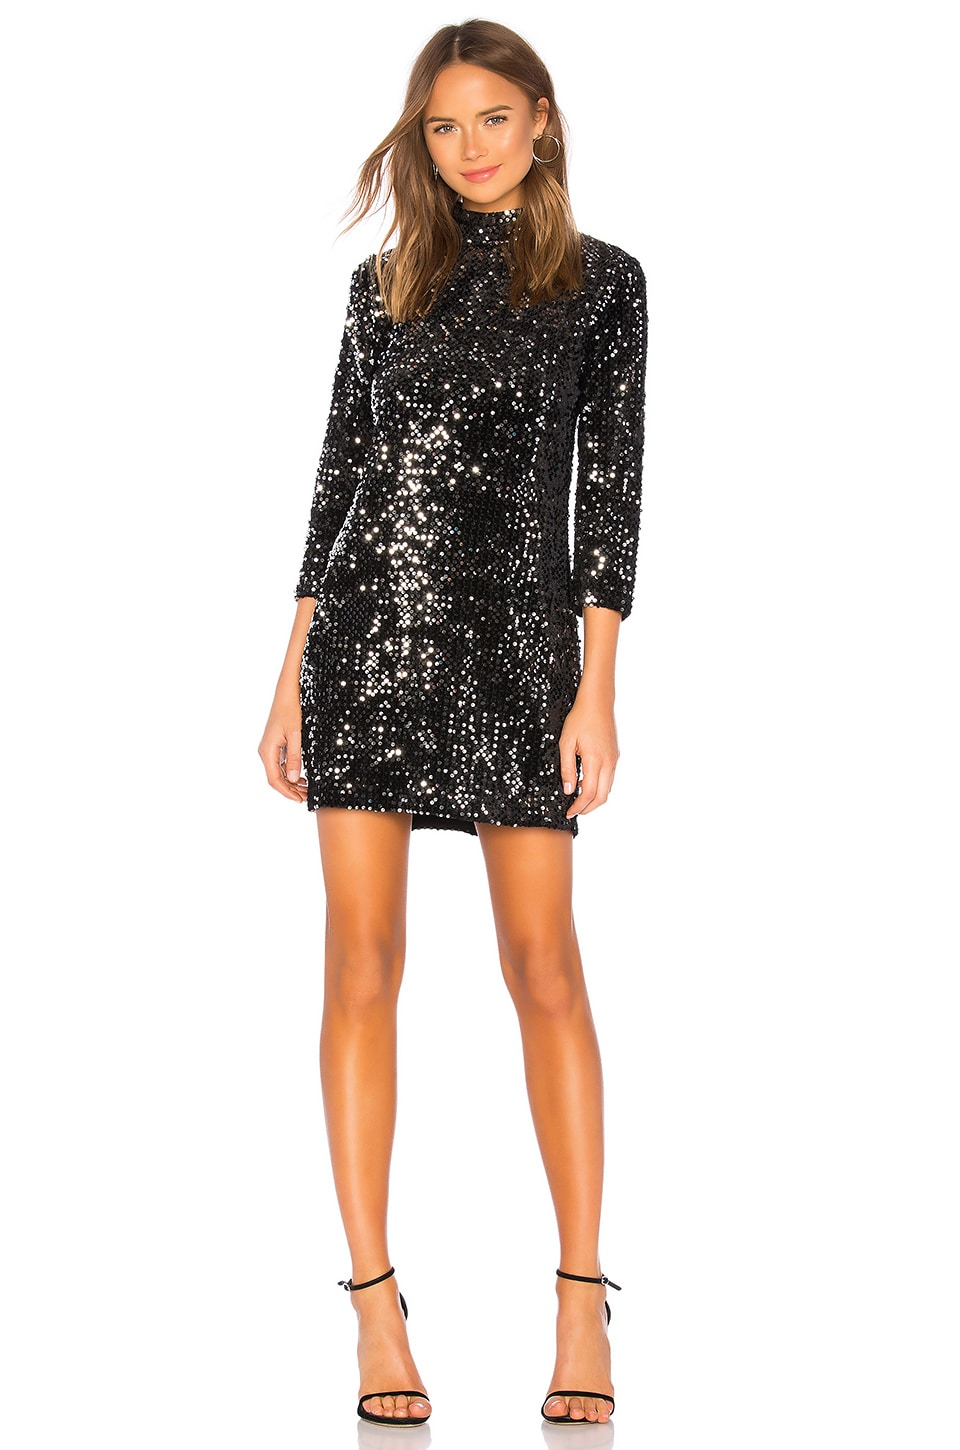 Sanctuary Keep Your Heads Up Sequins Shift Dress in Black & Silver